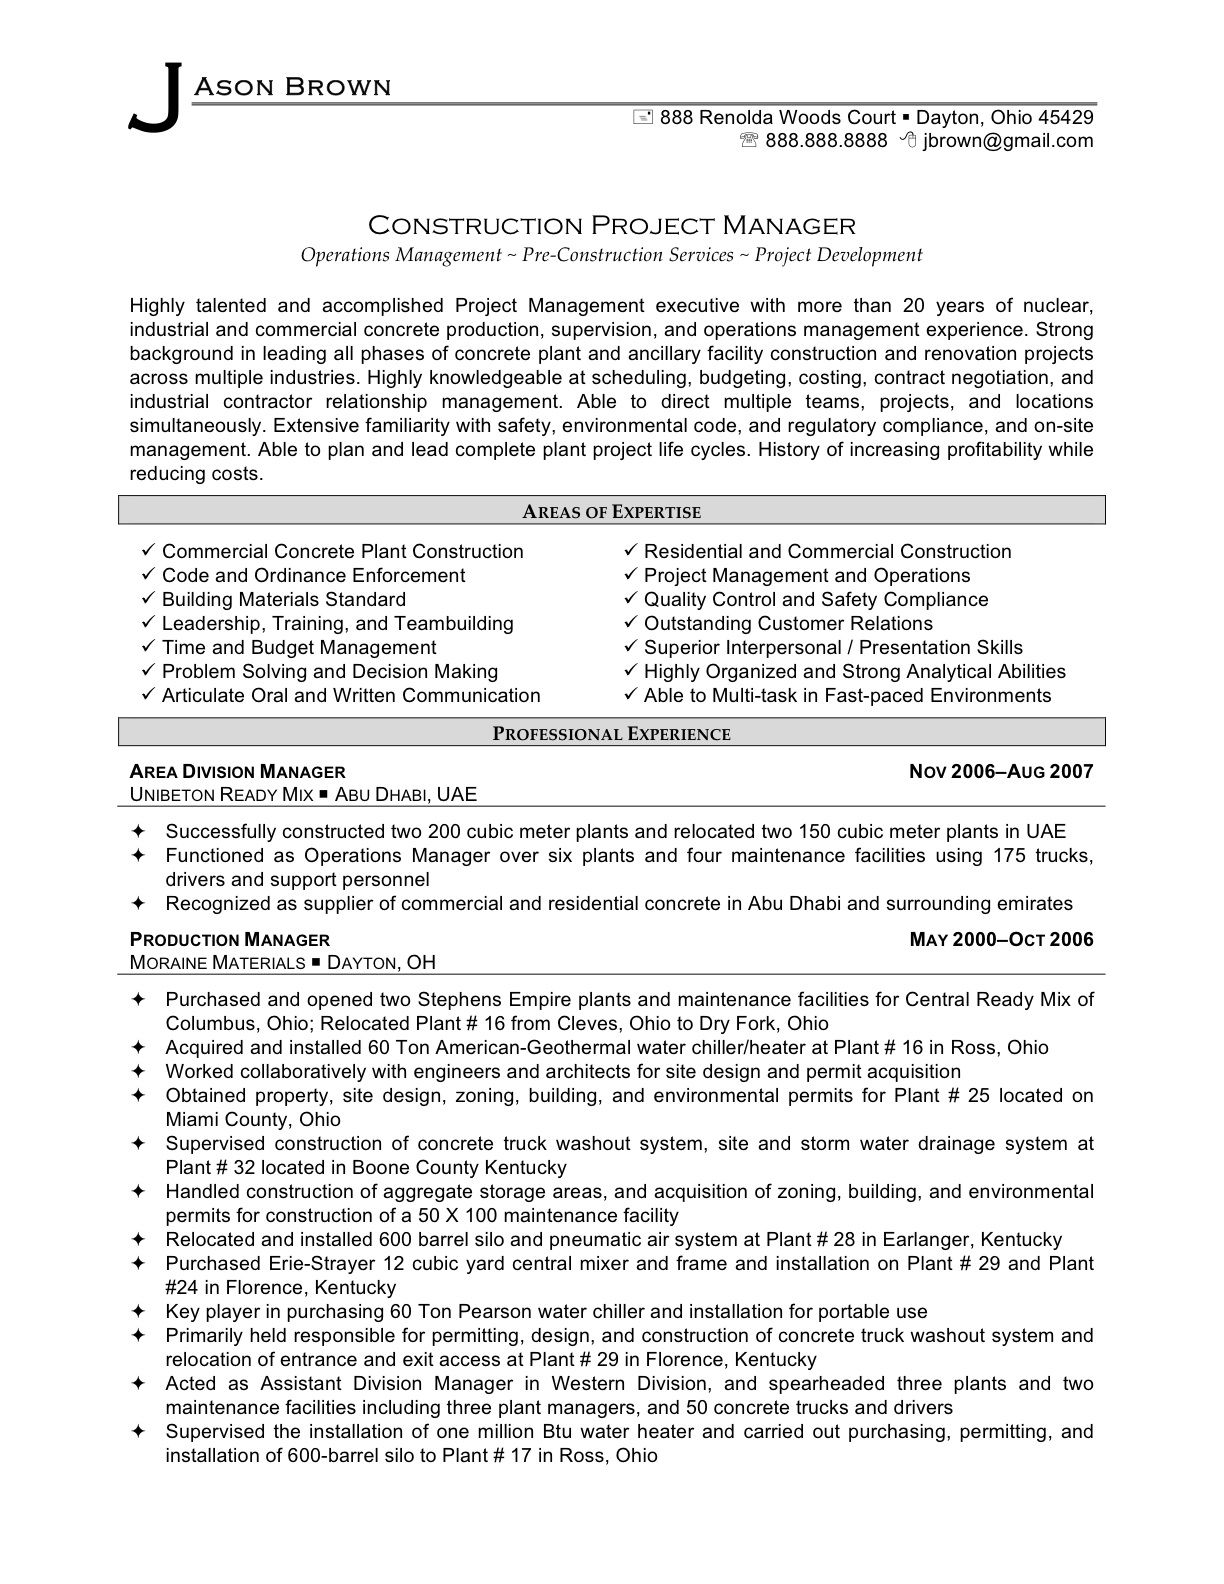 Professional Resume Samples Career Stuff Project Manager